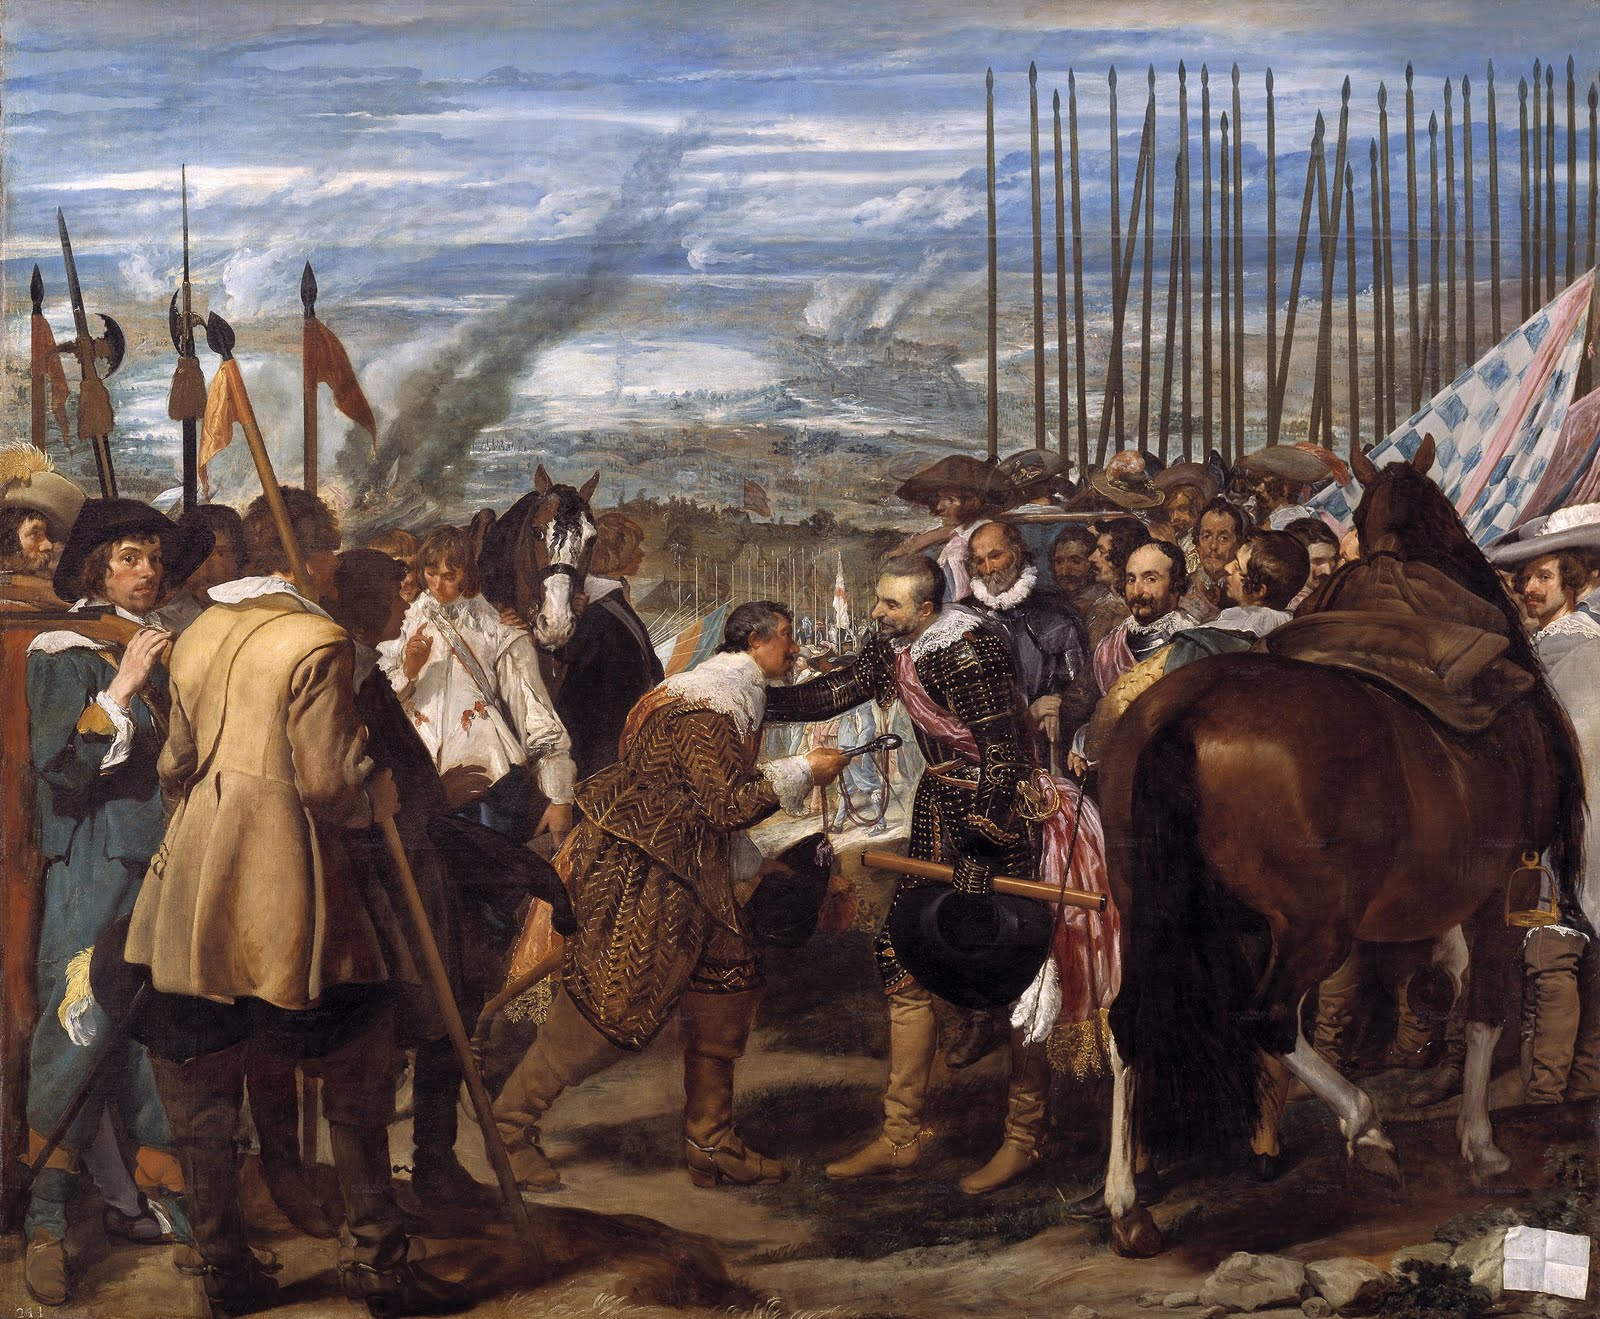 an analysis of the thirty years war in germany during the late medieval period Western europe during 1450-1750 coming as it does after the medieval period and before the industrial age  (the thirty years war in germany.